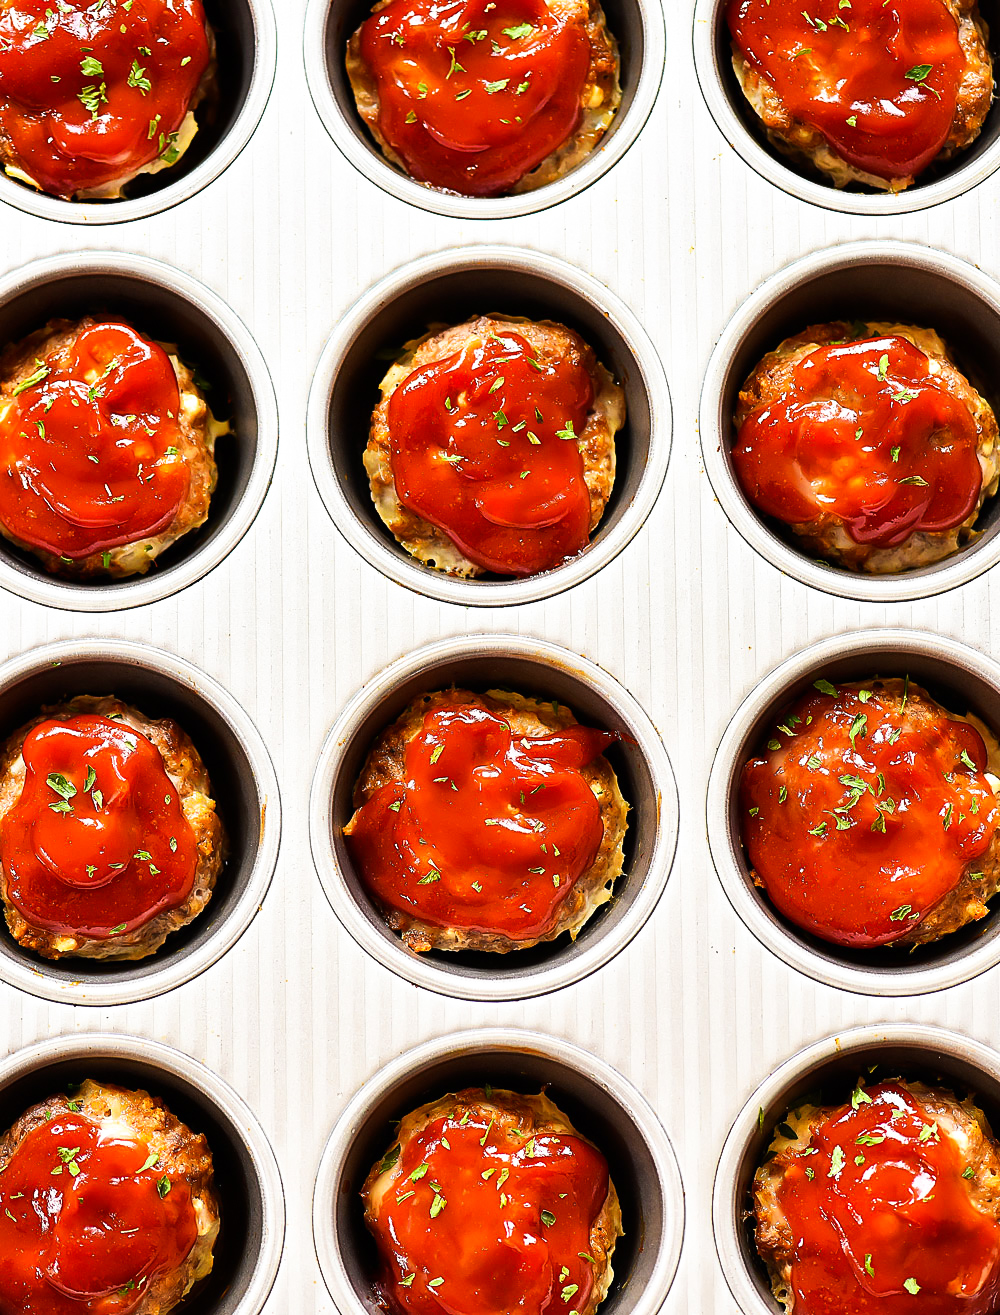 Mini Meatloaf Cups made with ground beef, cottage cheese, breadcrumbs and more. Topped with ketchup.